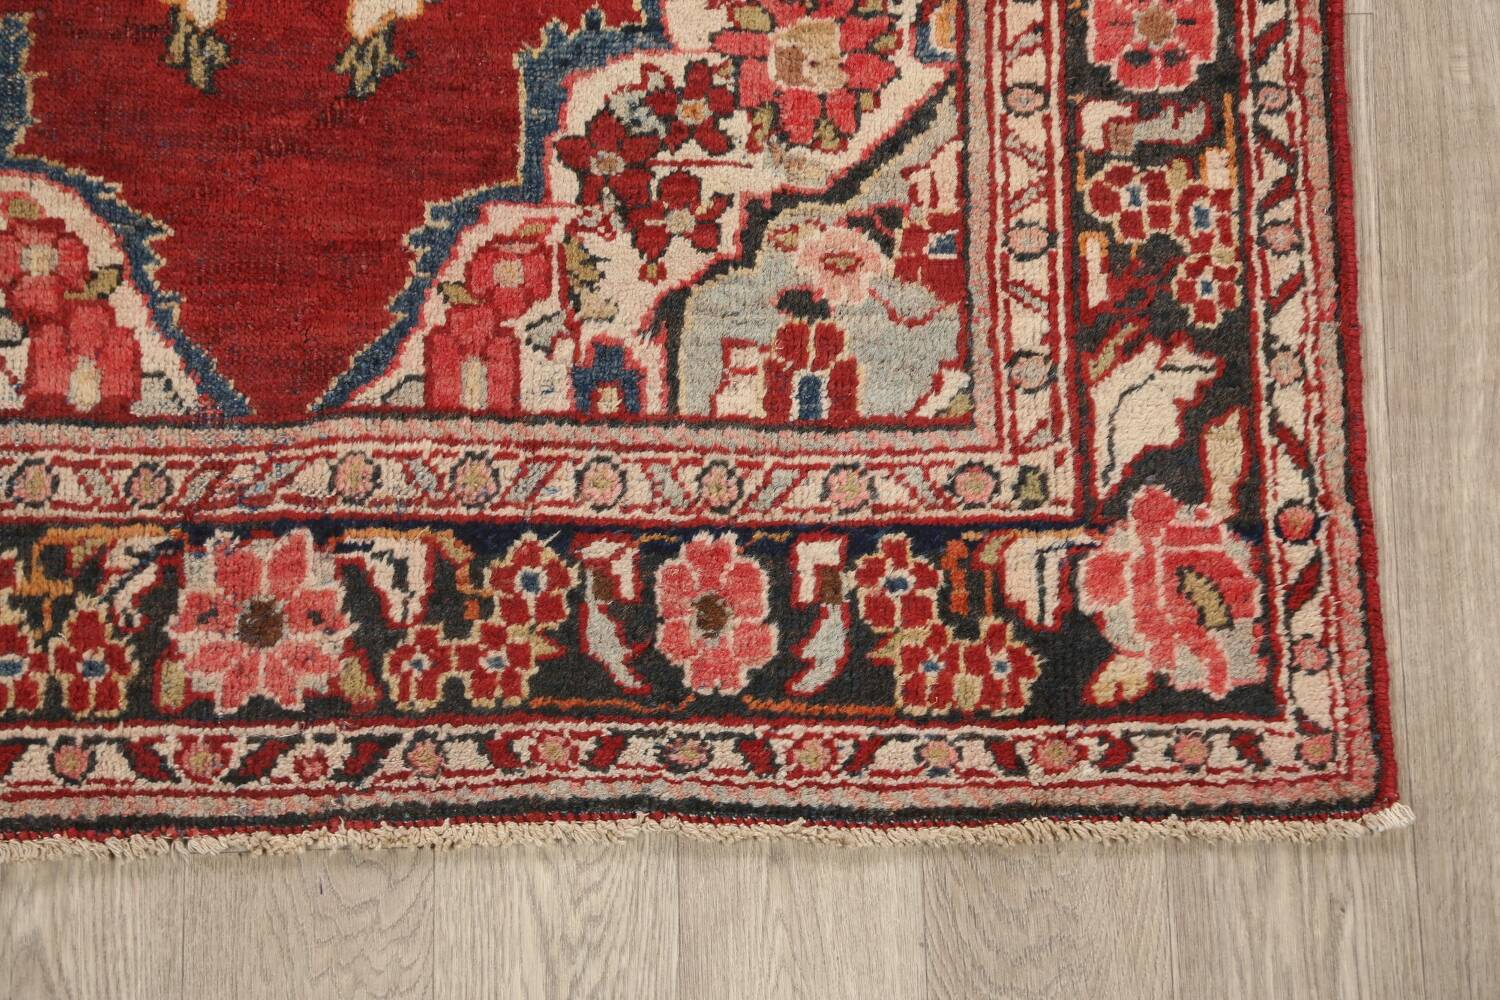 Antique Floral Mahal Persian Area Rug 4x7 image 5